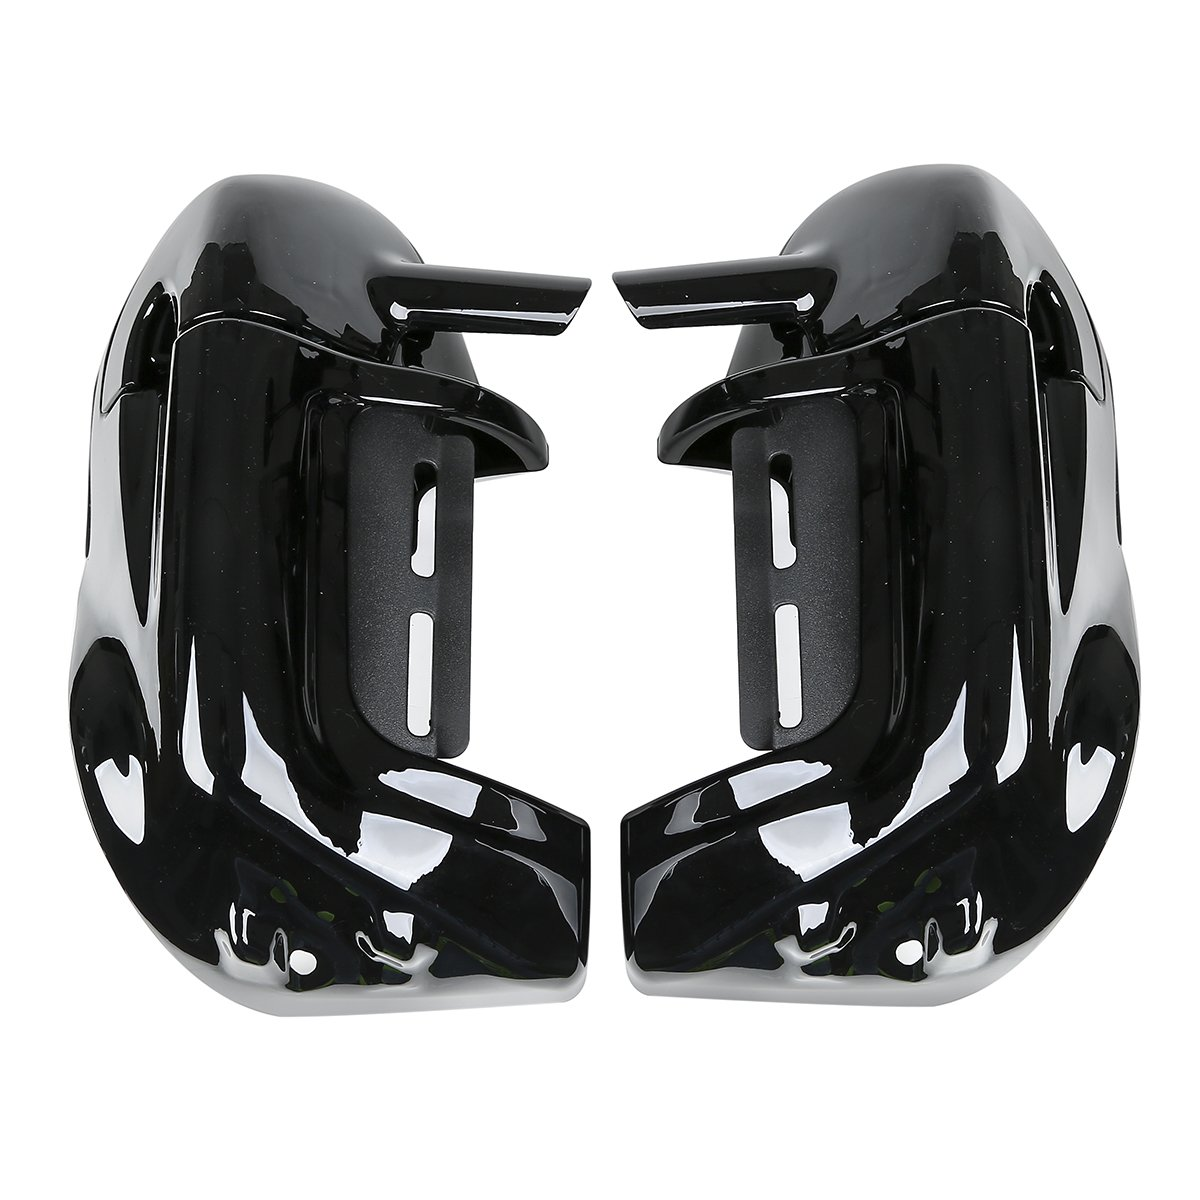 XMT-MOTO Lower Vented Leg Fairing + 6.5'' Speakers w/ Grills For Harley Touring 1983-2013